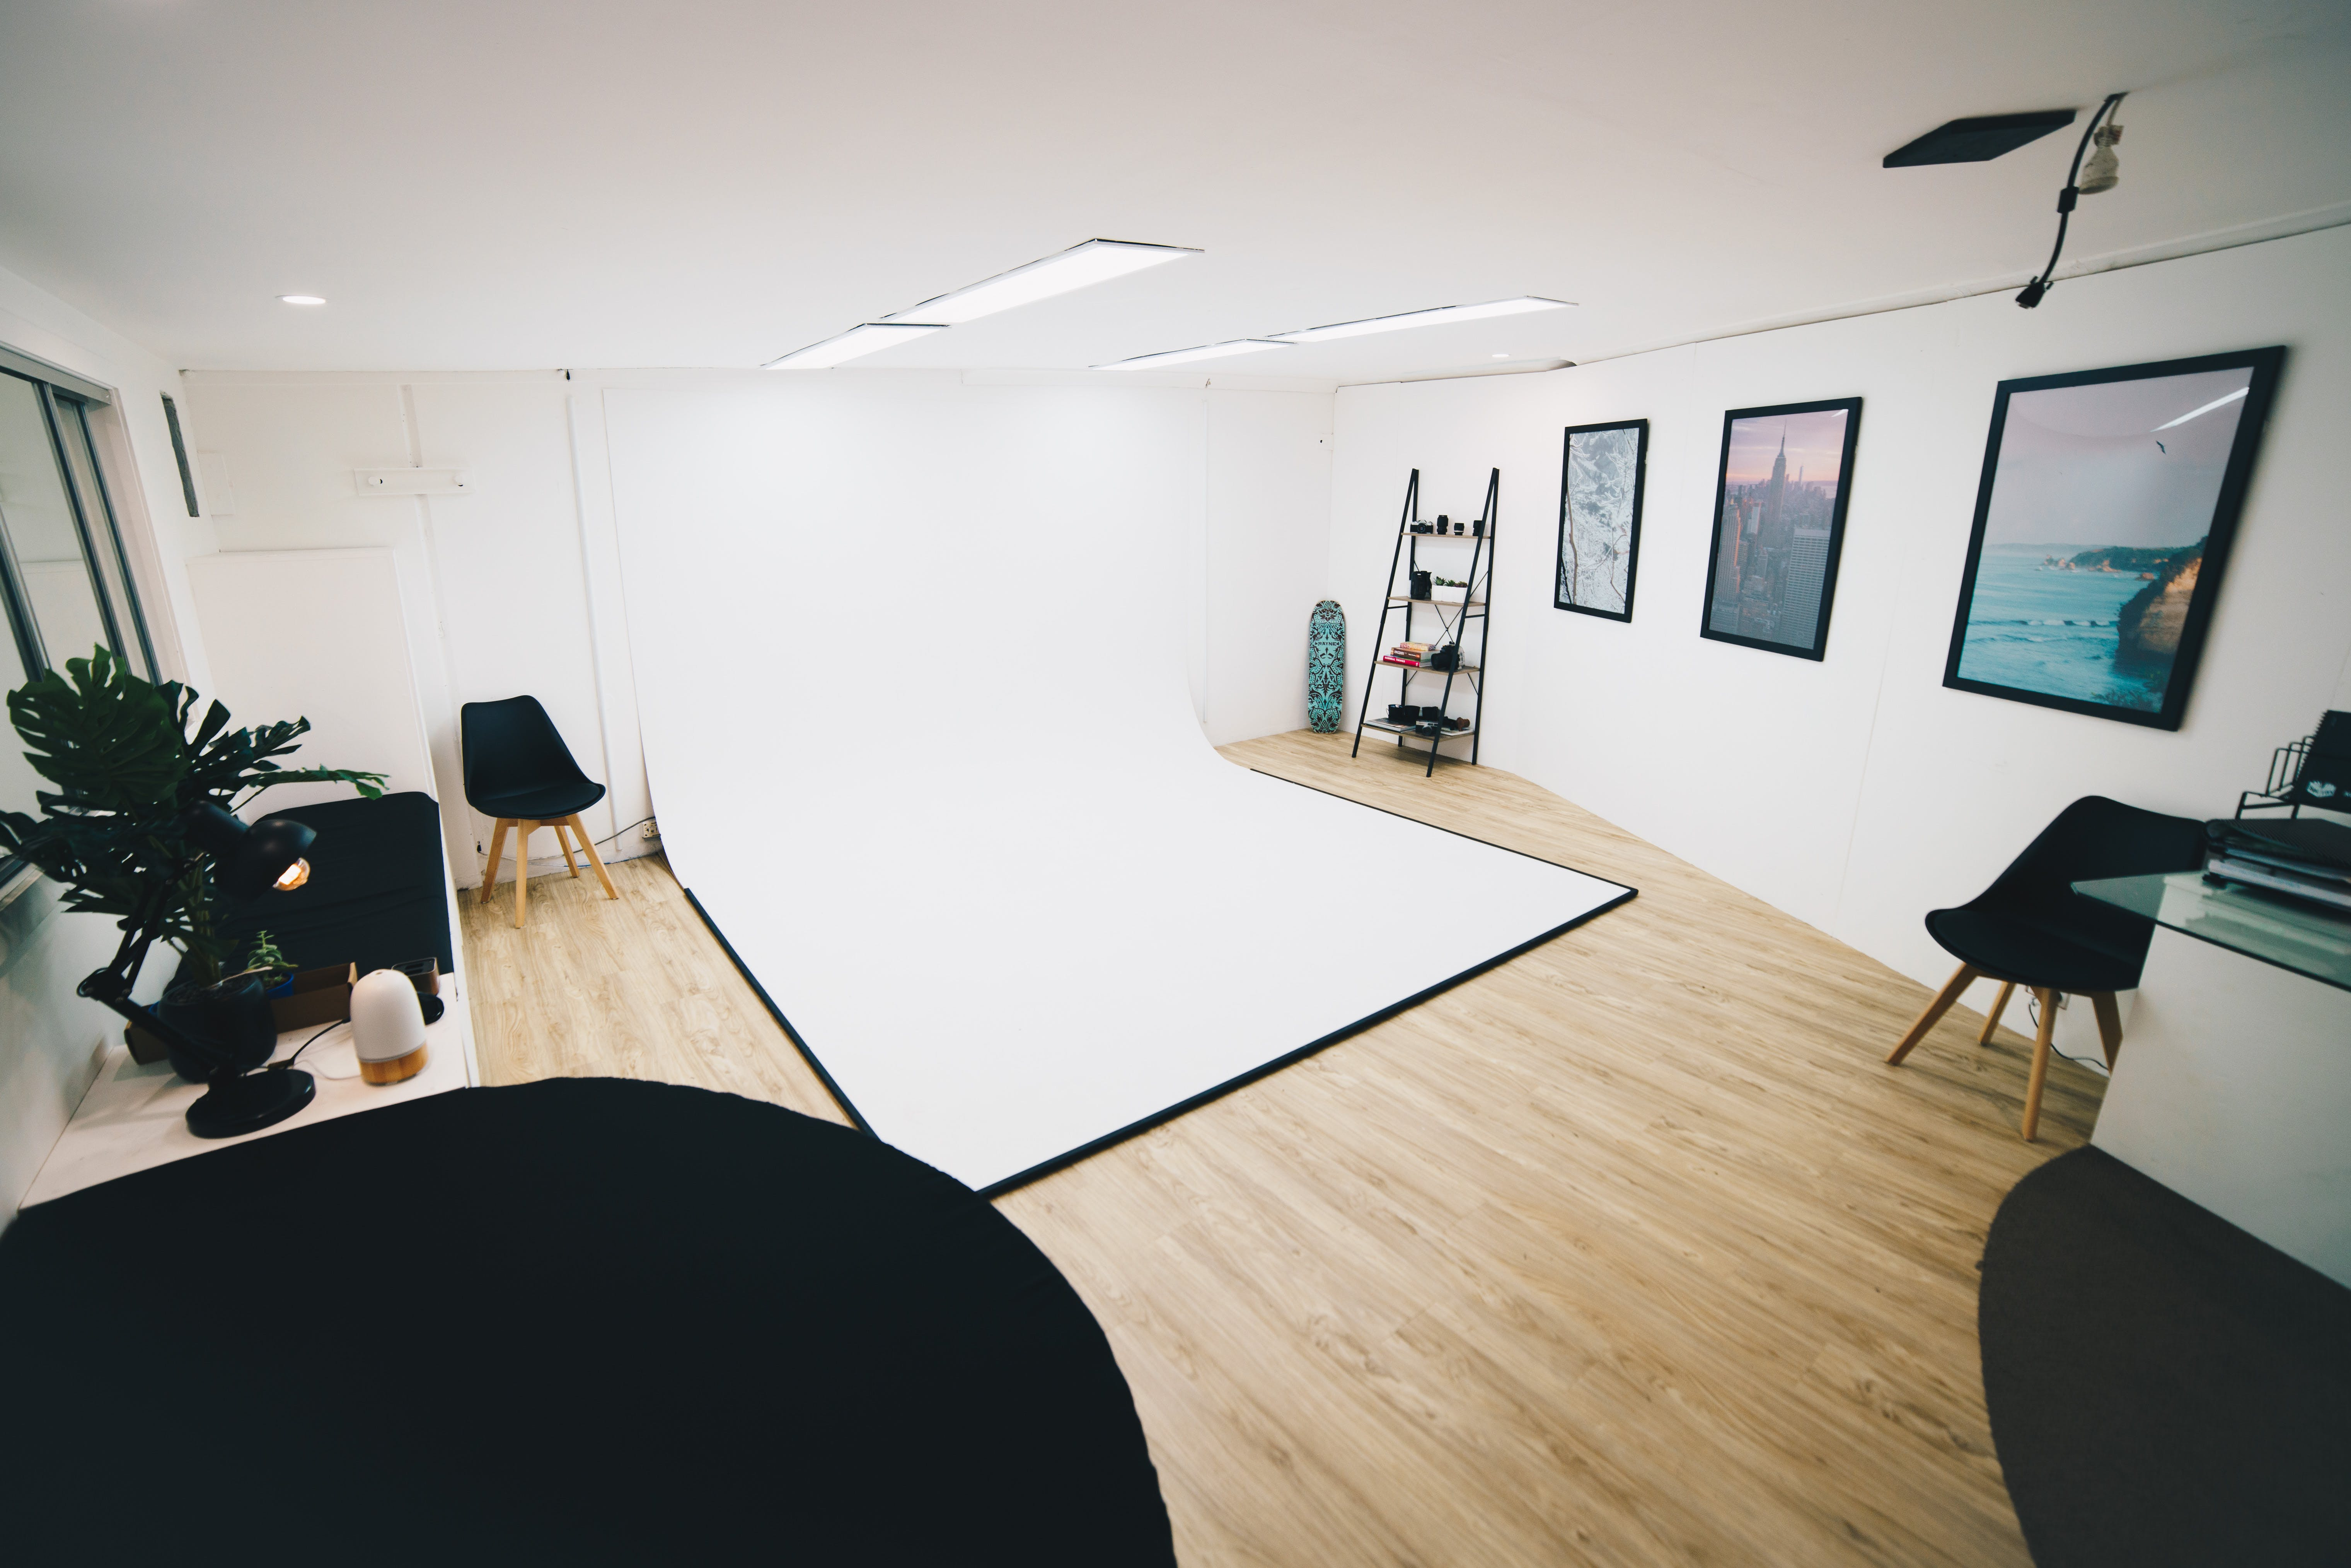 Photography/Videography Studio, creative studio at Temenos Production House, image 1